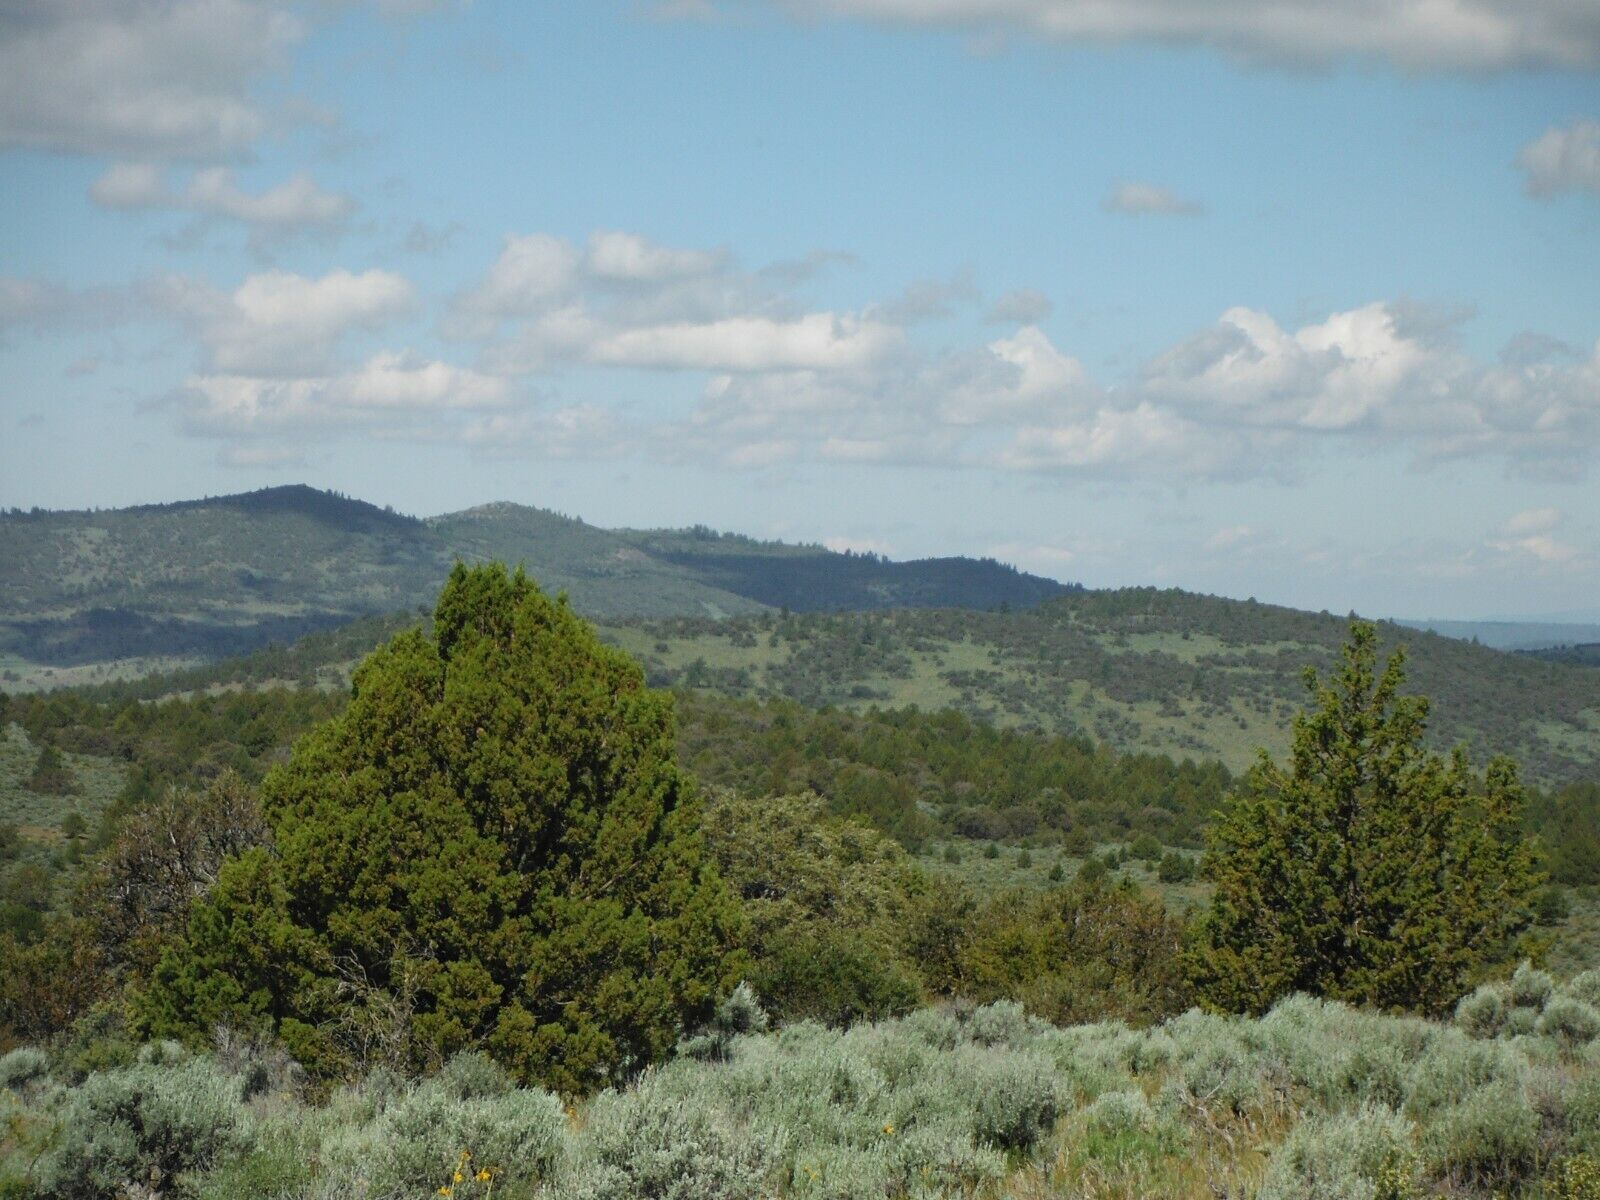 40 ACRES NORTHERN CALIFORNIA VIEW PROPERTY VIEWS